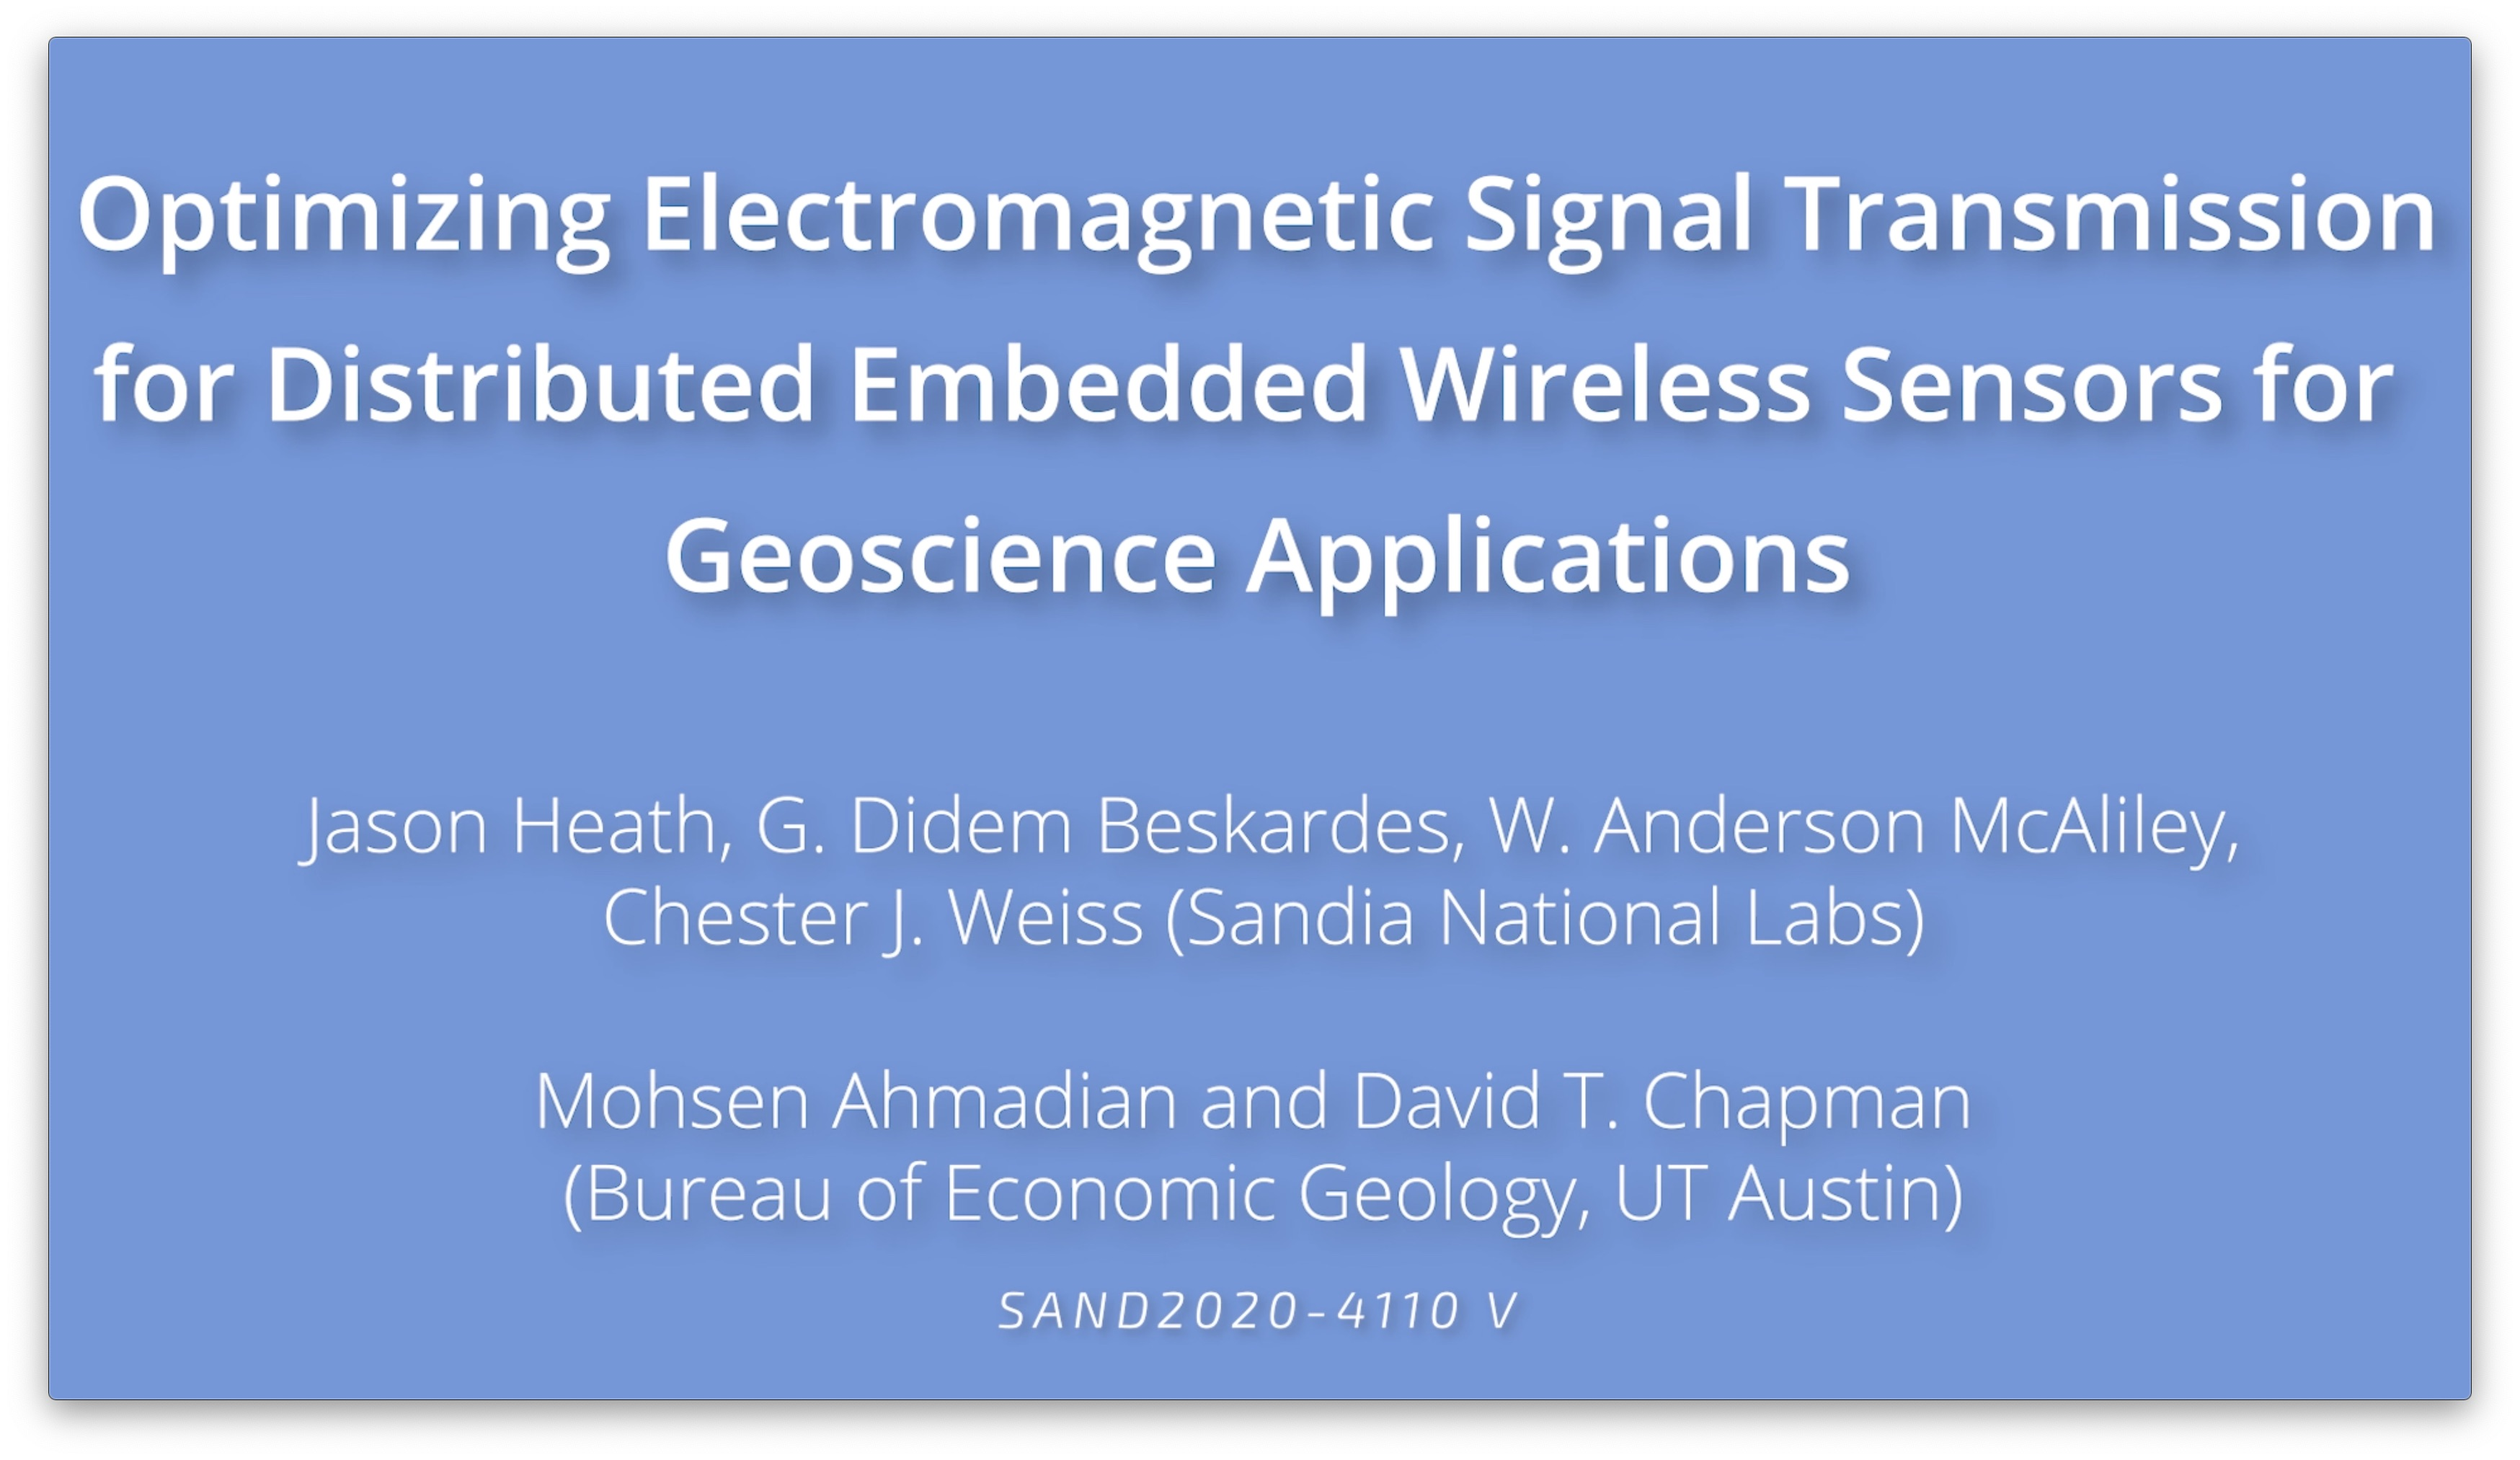 Optimizing Electromagnetic Signal Transmission for Distributed Embedded Wireless Sensors for Geoscience Applications